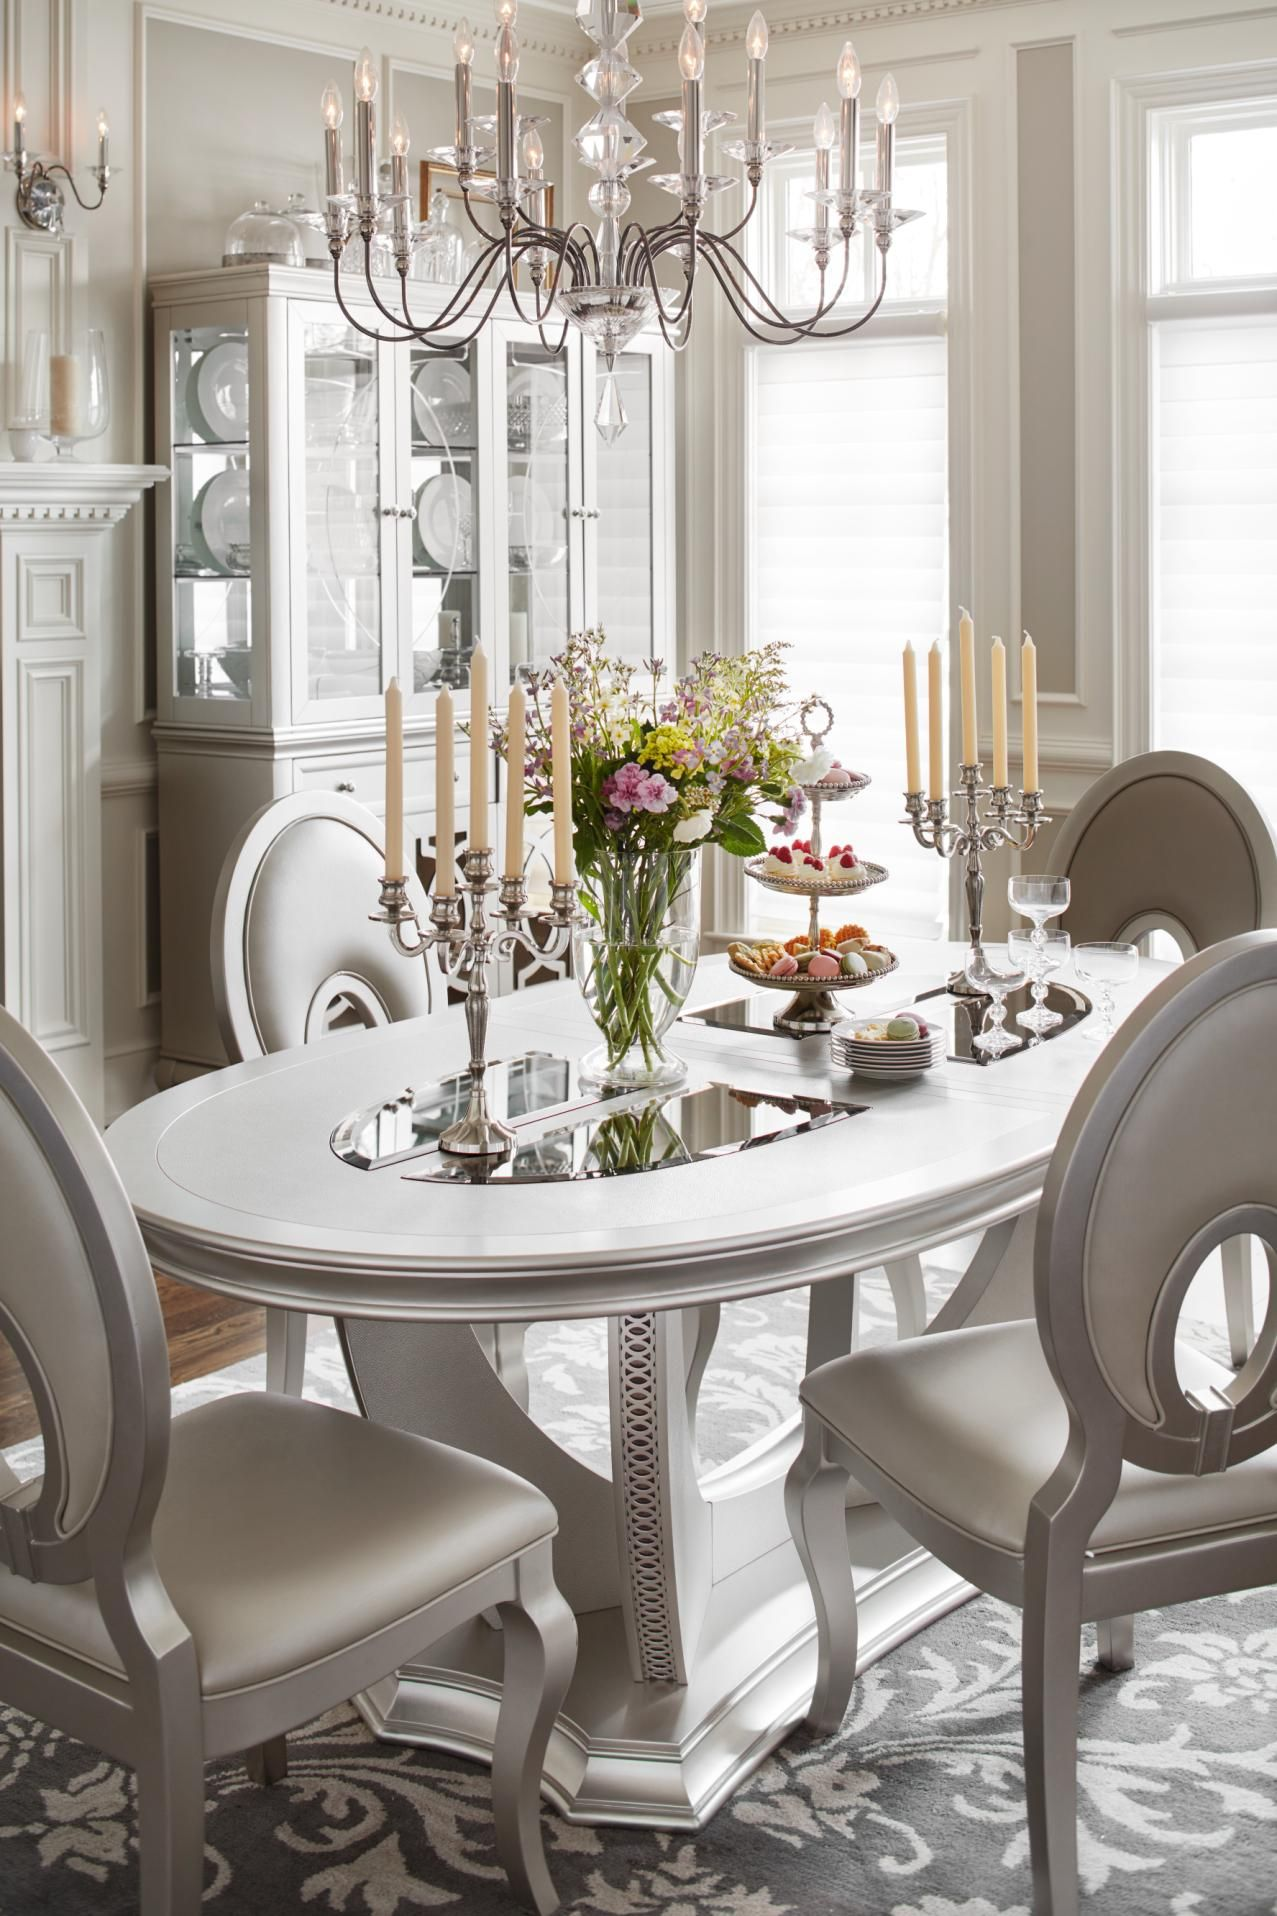 A Glam Dining Room Fit For A Queen Our Allegro Collection Is Astounding Dining Room Sets Dining Room Inspiration Dining Room Bar